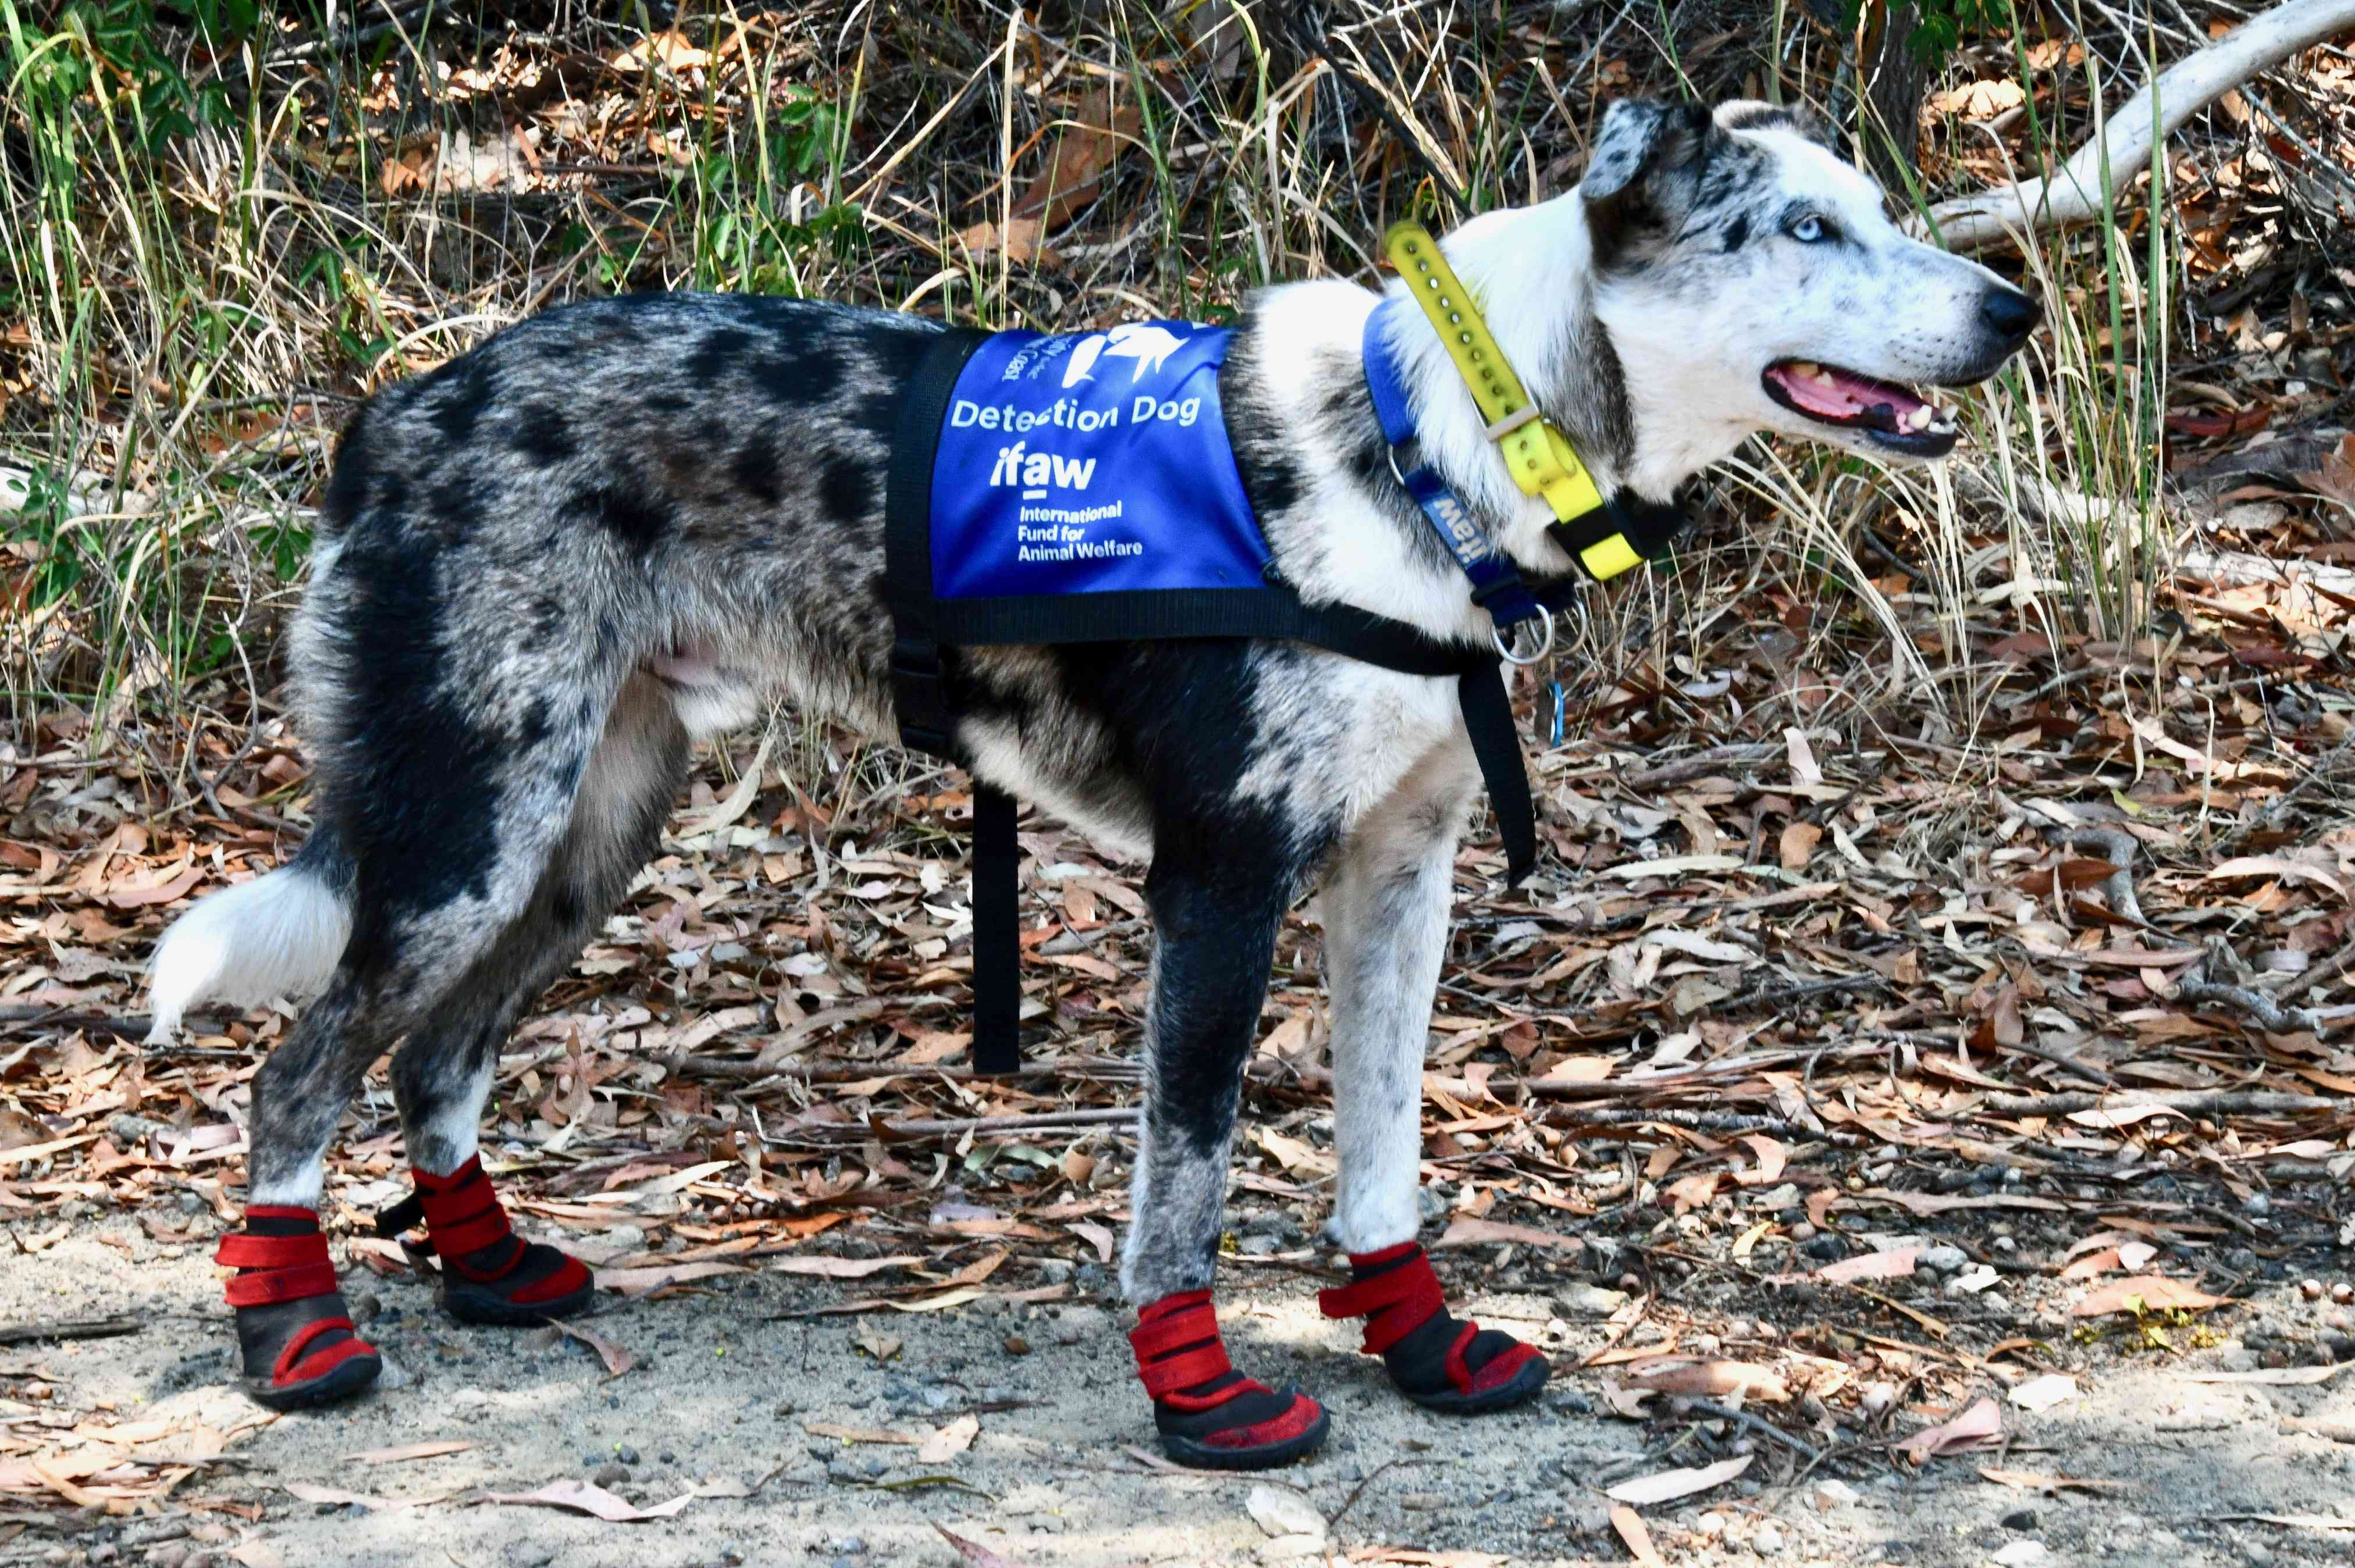 Bear is trained to sniff out live koalas so they can be rescued.